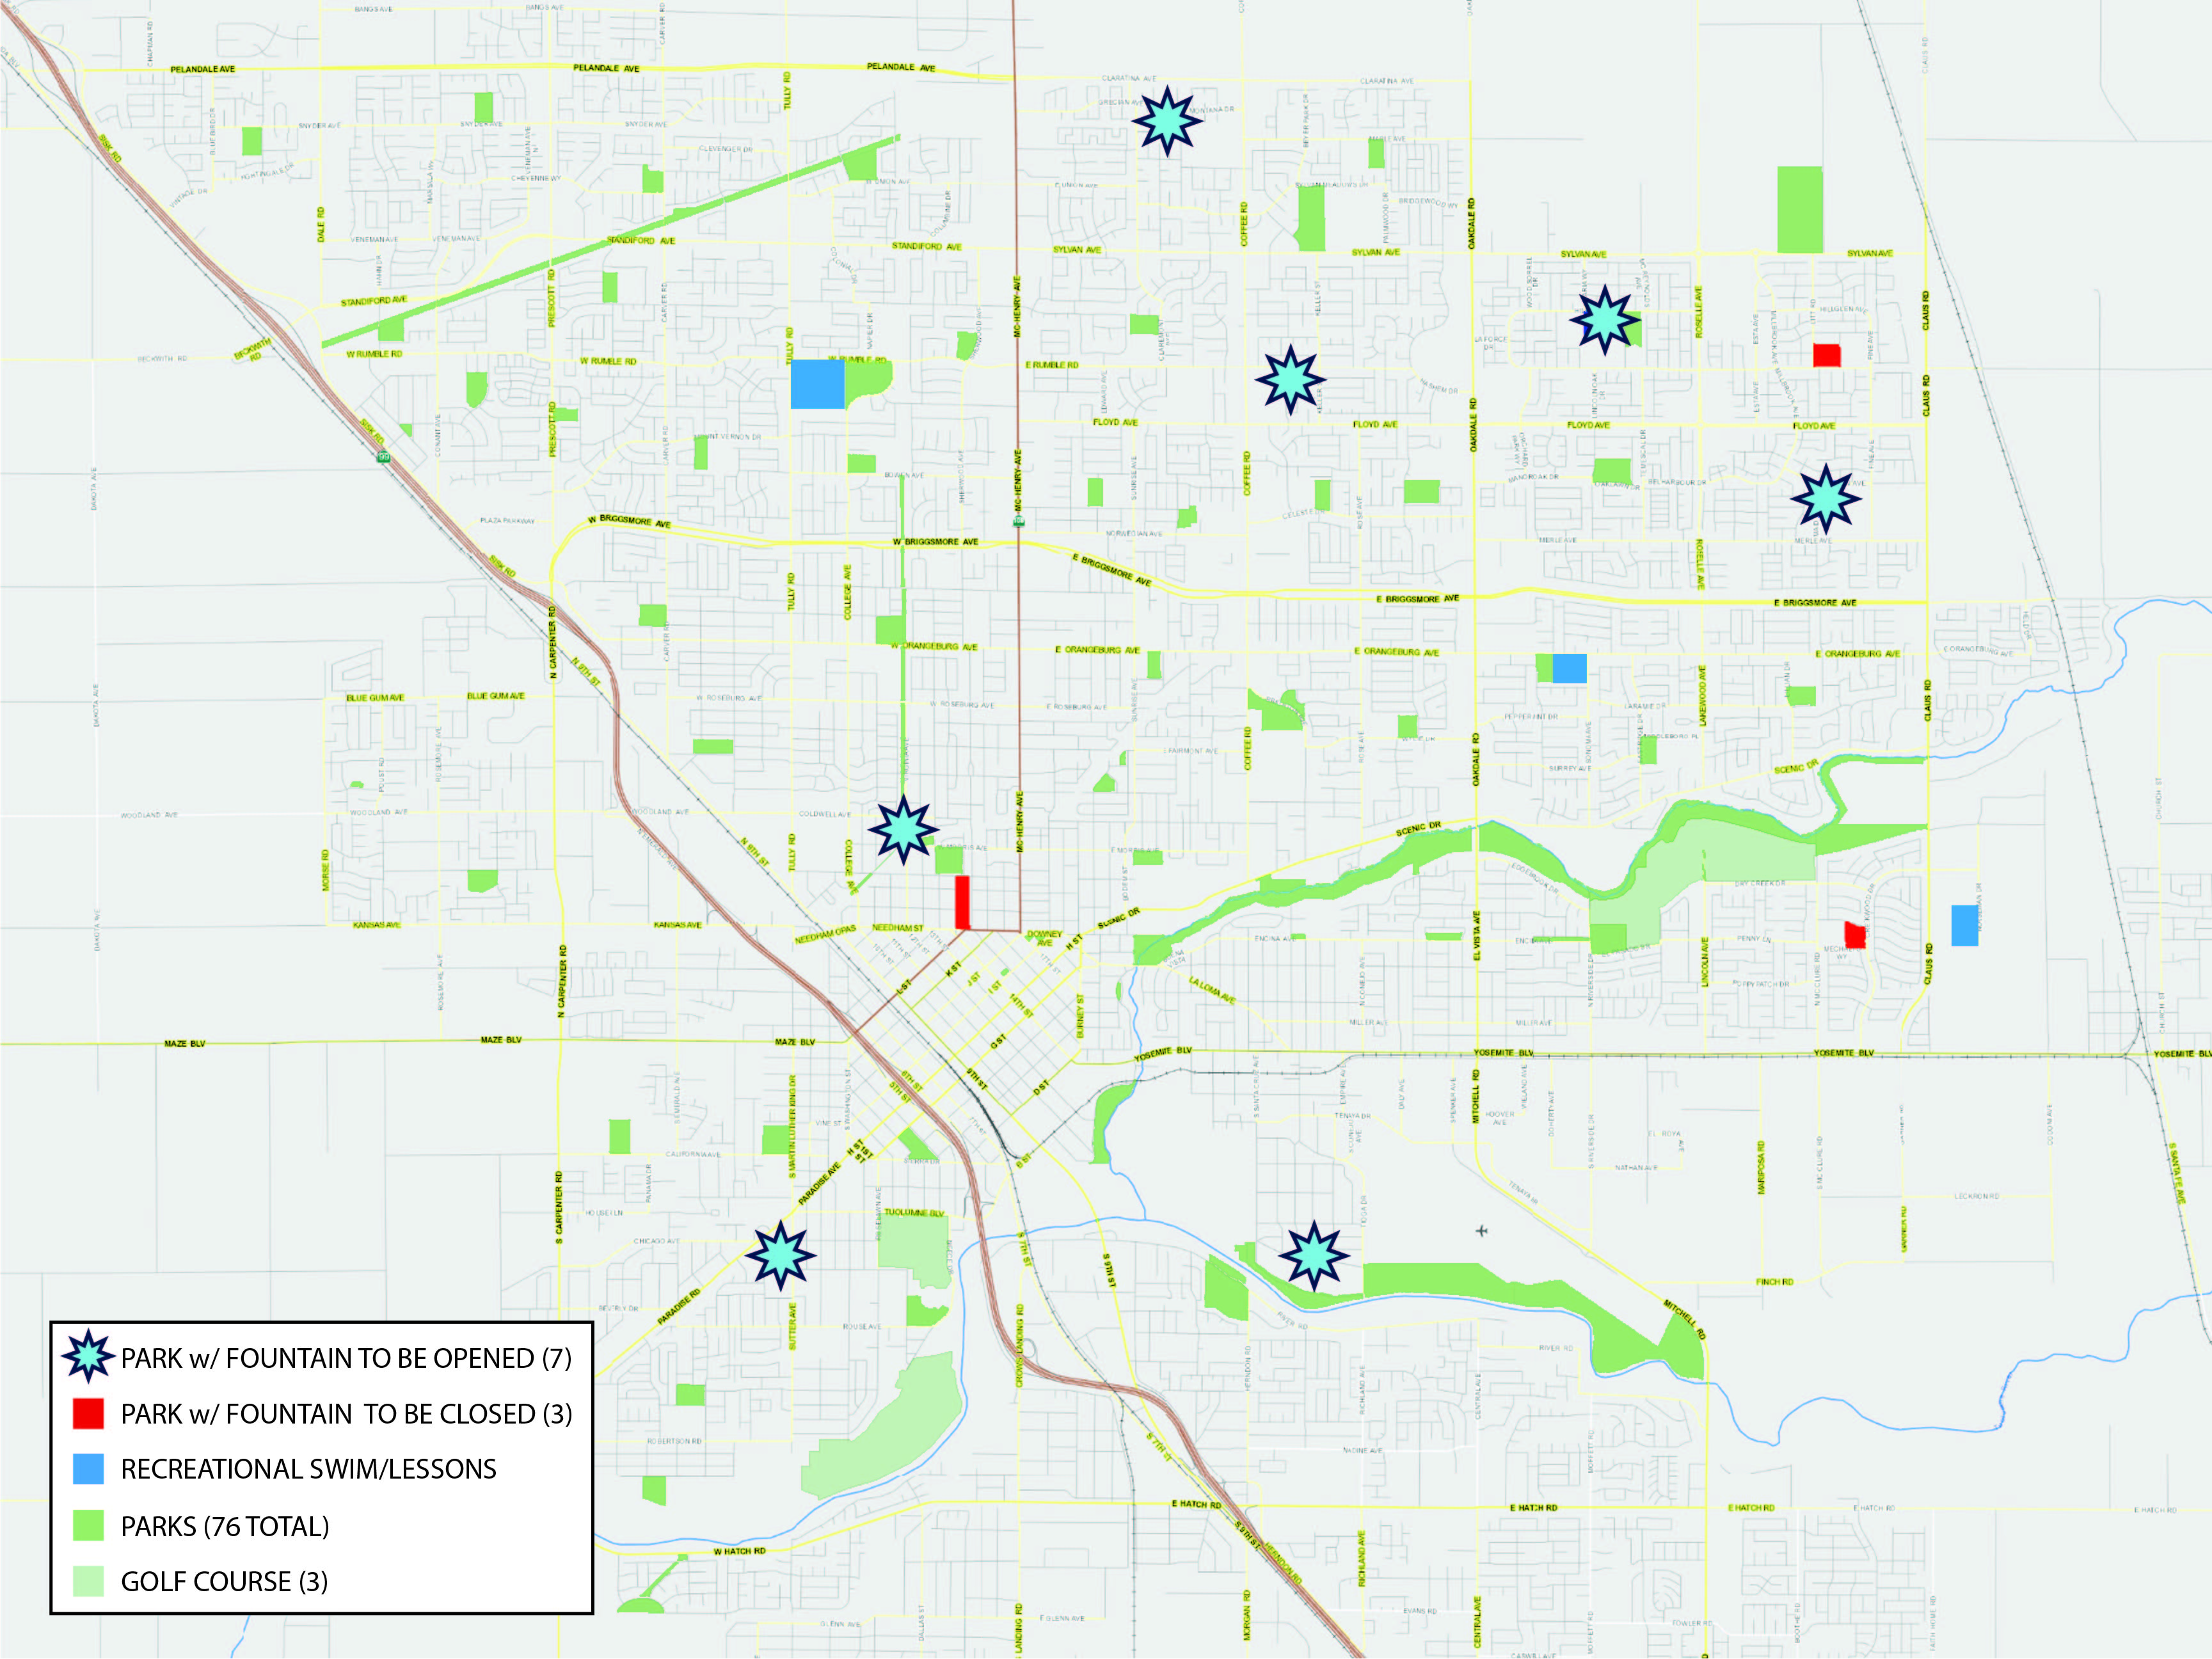 map of parks with water features. modesto ca